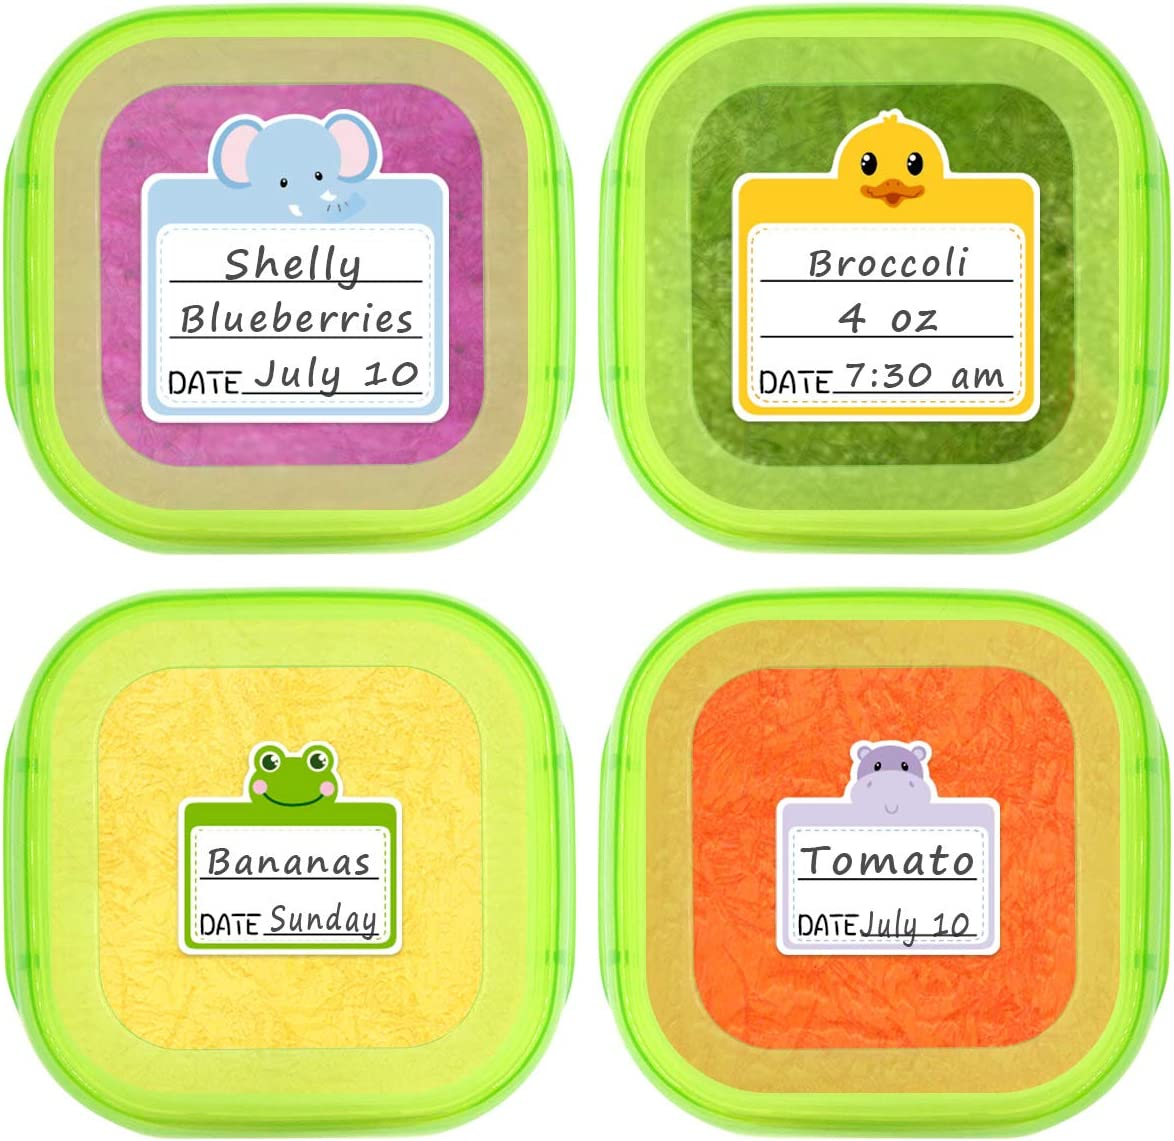 108Pcs Food Storage Containers Labels Removable Waterproof Stickers for Baby Bottles Daycare